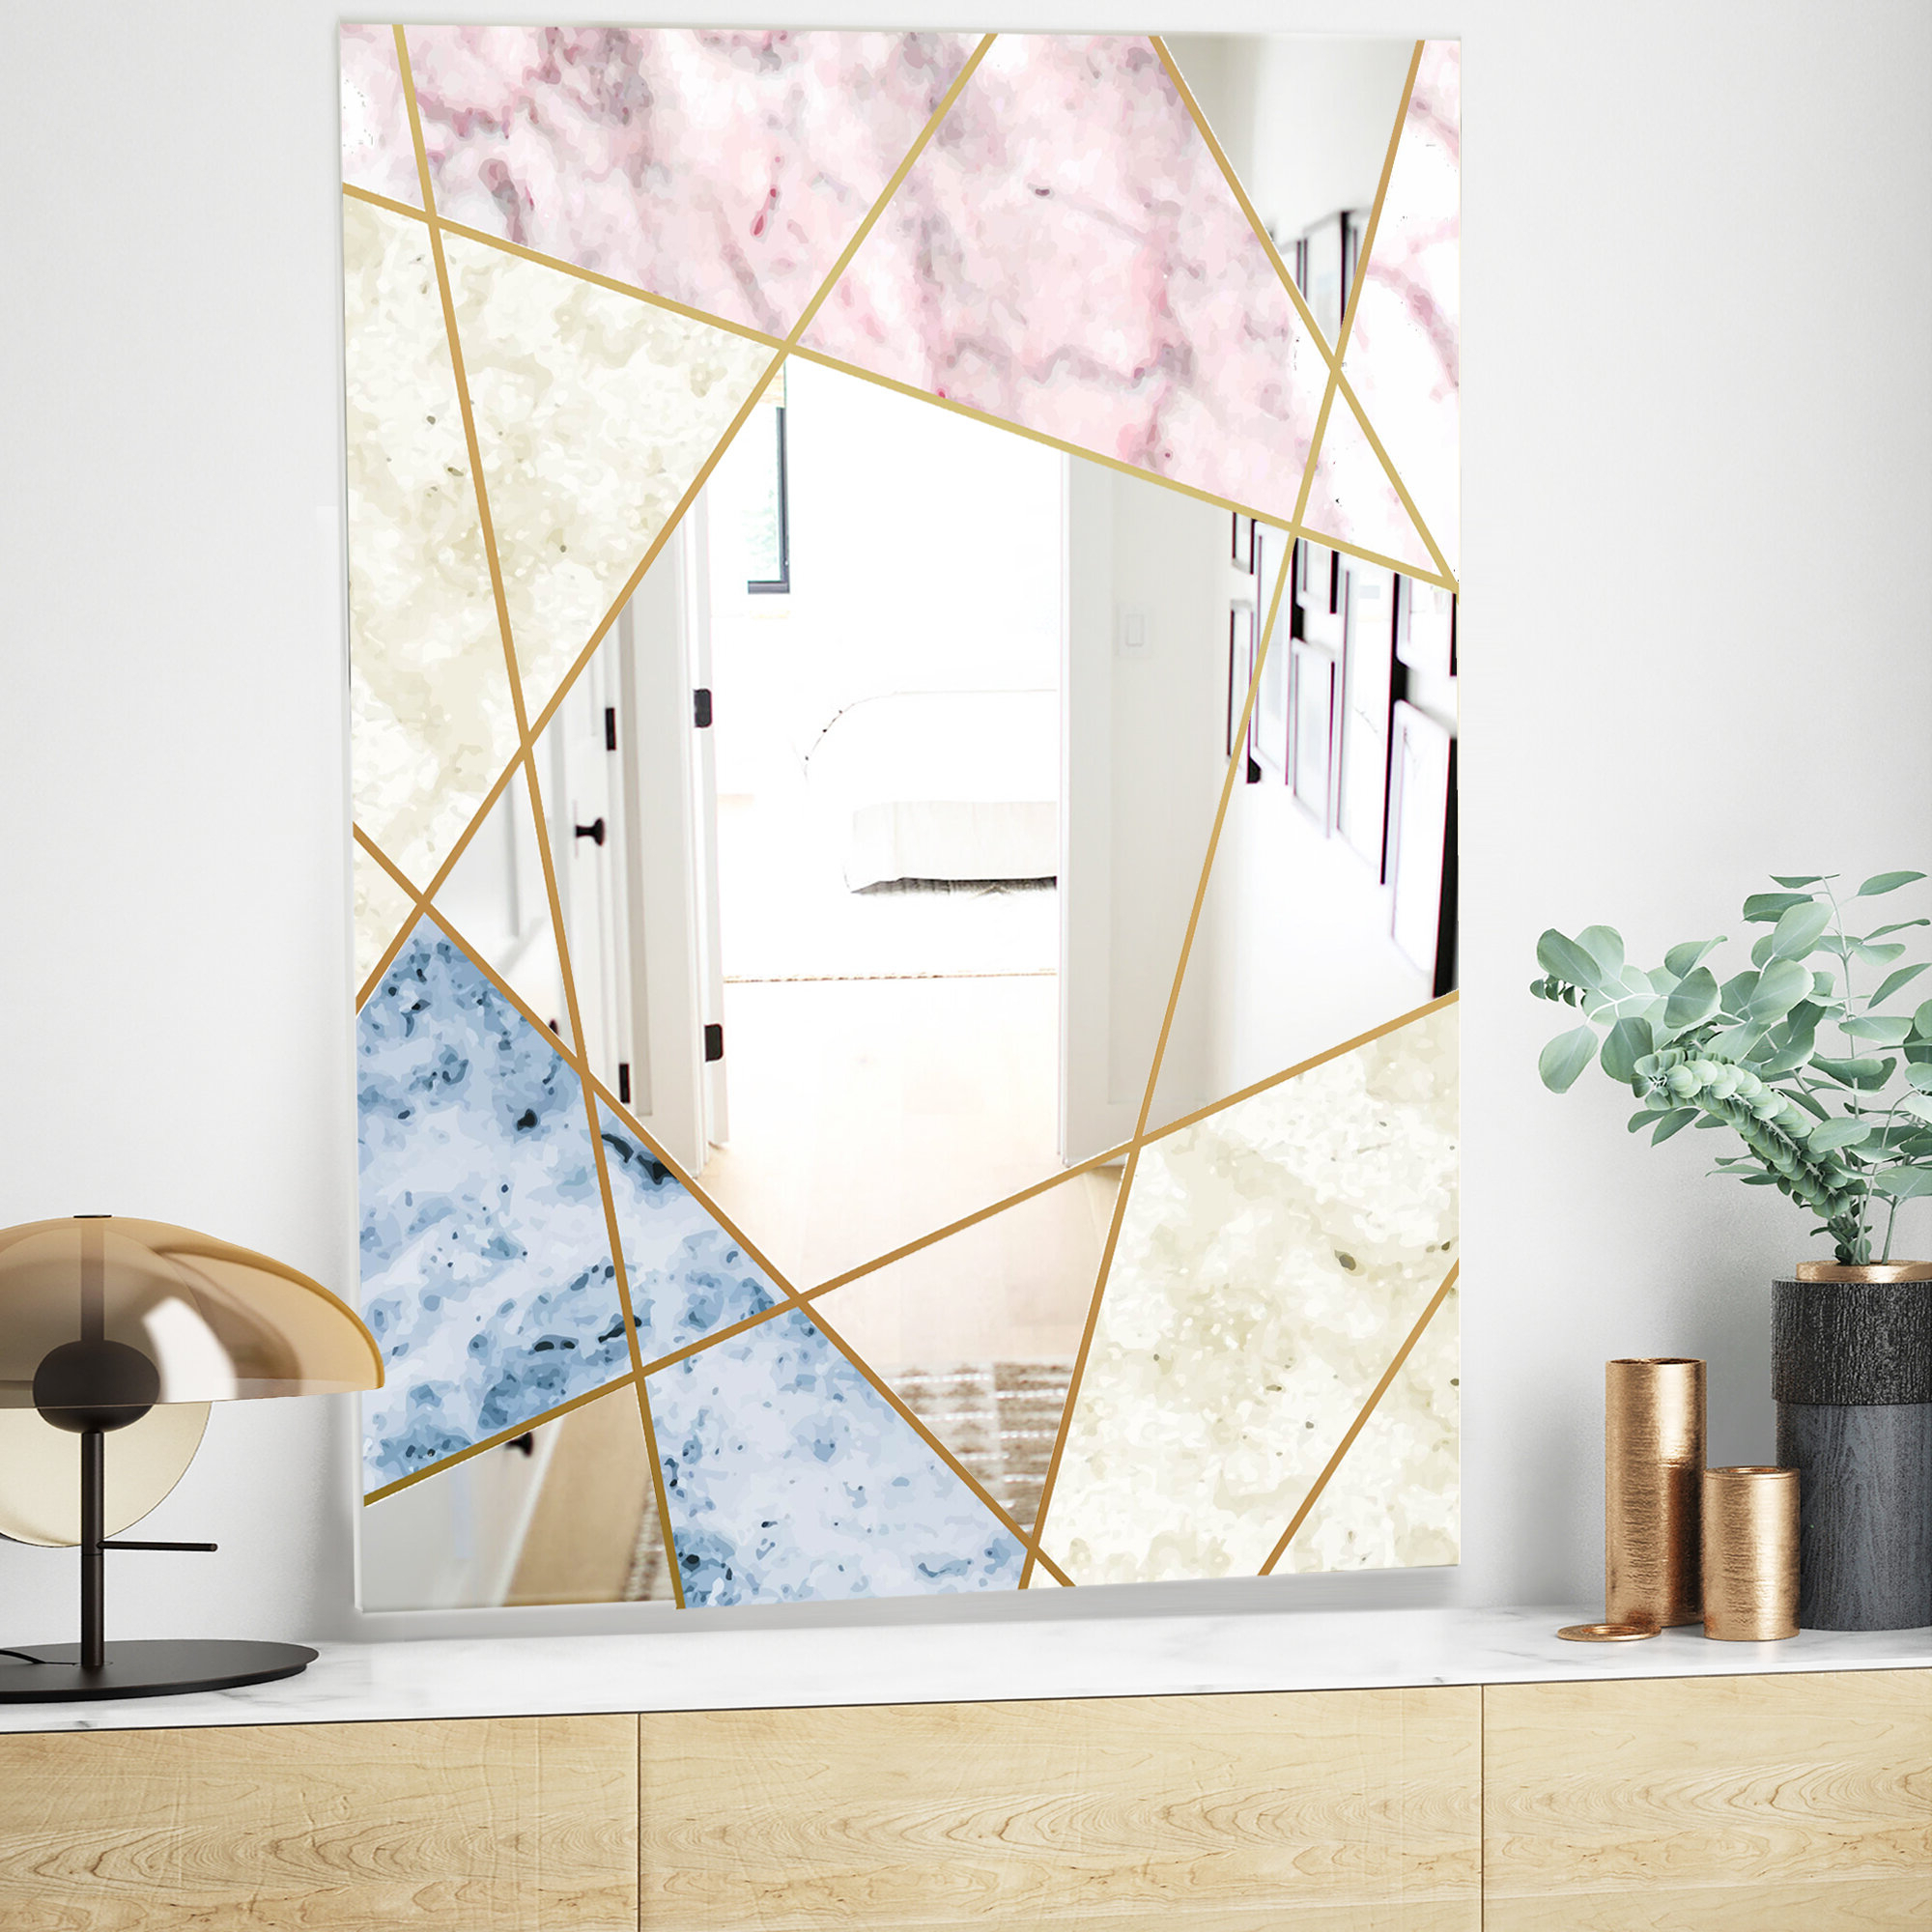 Traditional Frameless Diamond Wall Mirrors Regarding Favorite Marbled Diamond Mid Century Modern Frameless Accent Mirror (View 13 of 20)